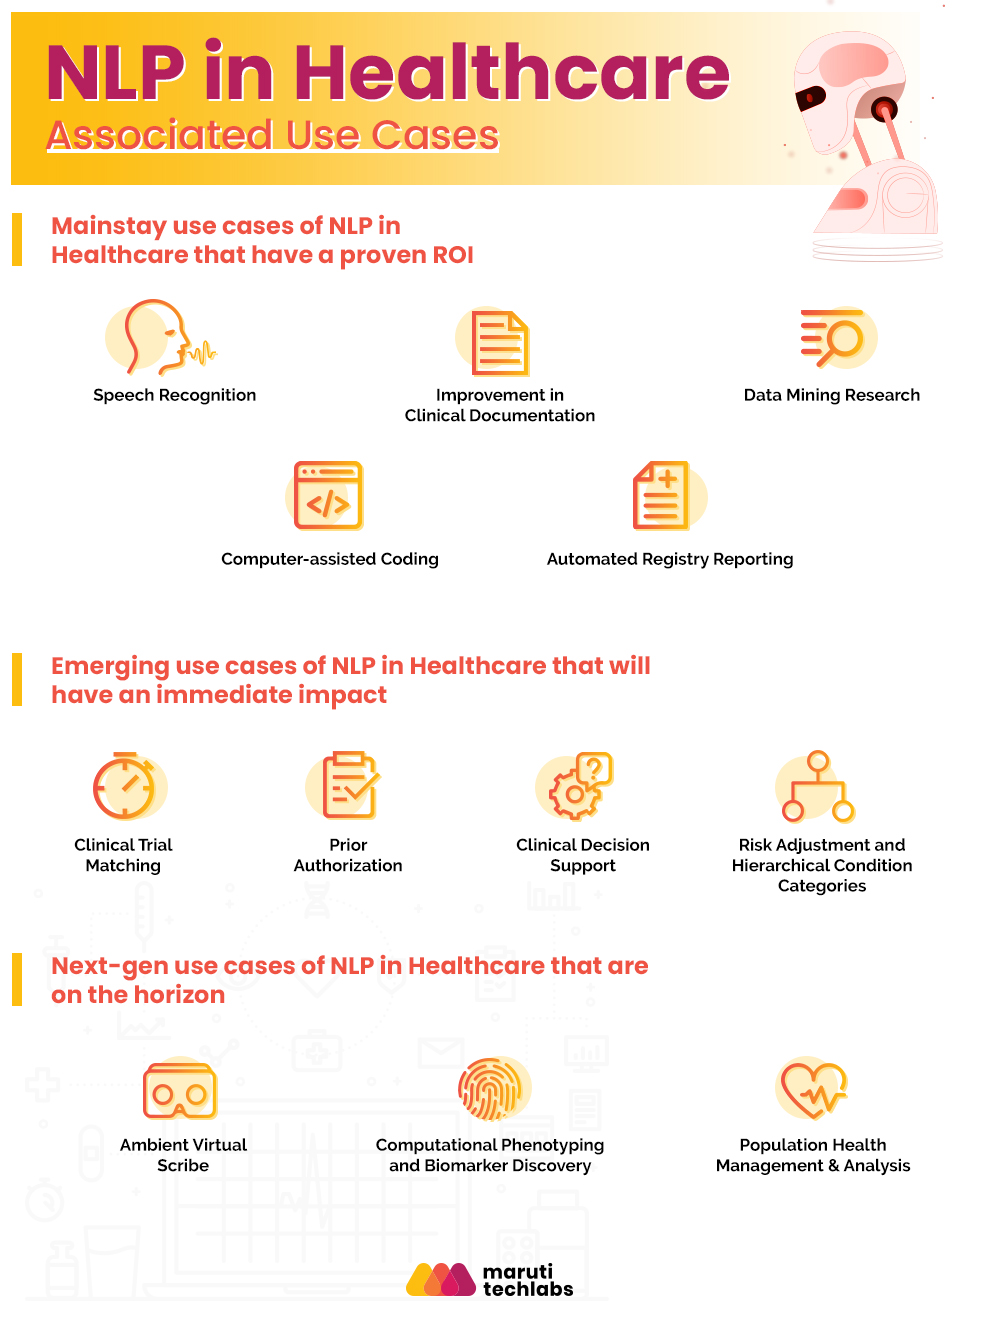 Use cases of Natural Language Processing in Healthcare